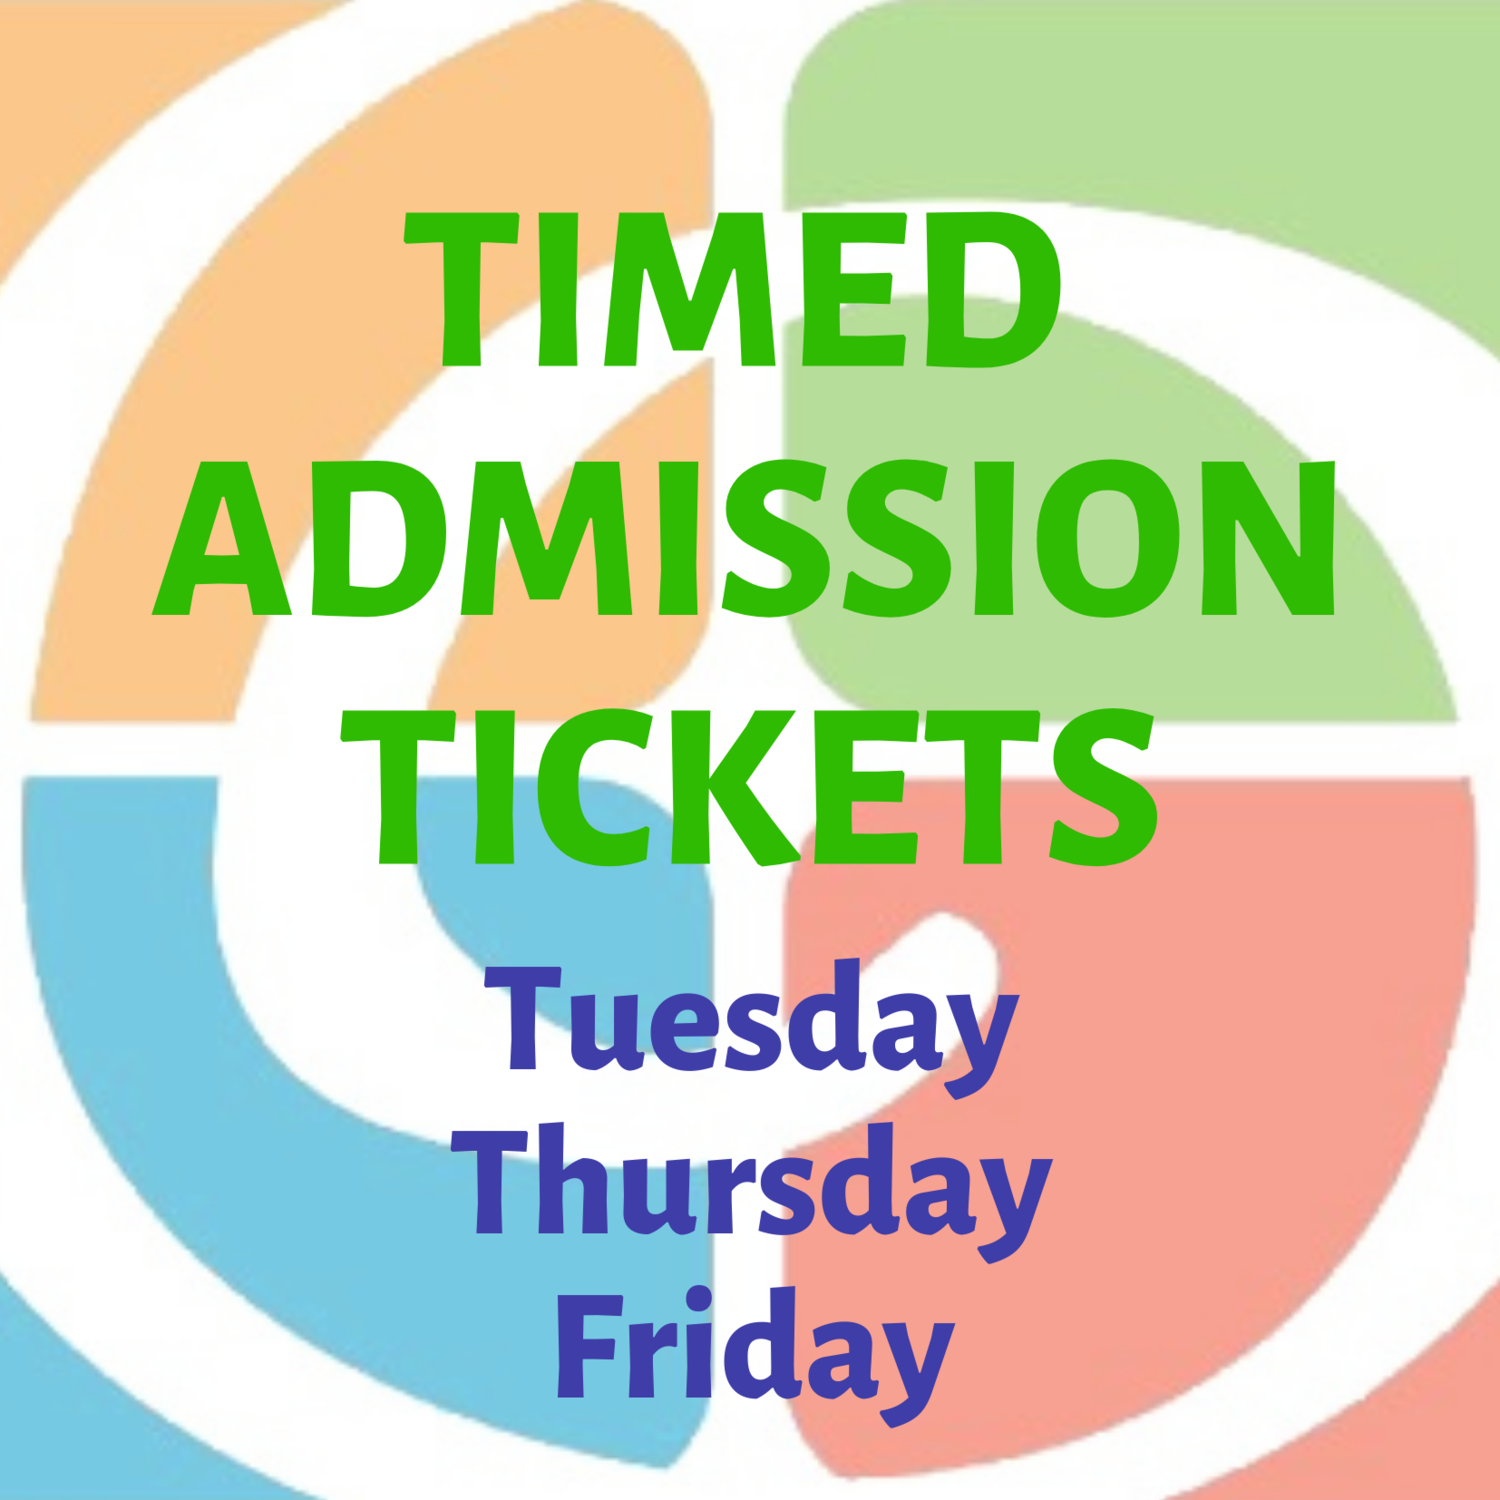 Timed Admission Tuesday, Thursday, Friday